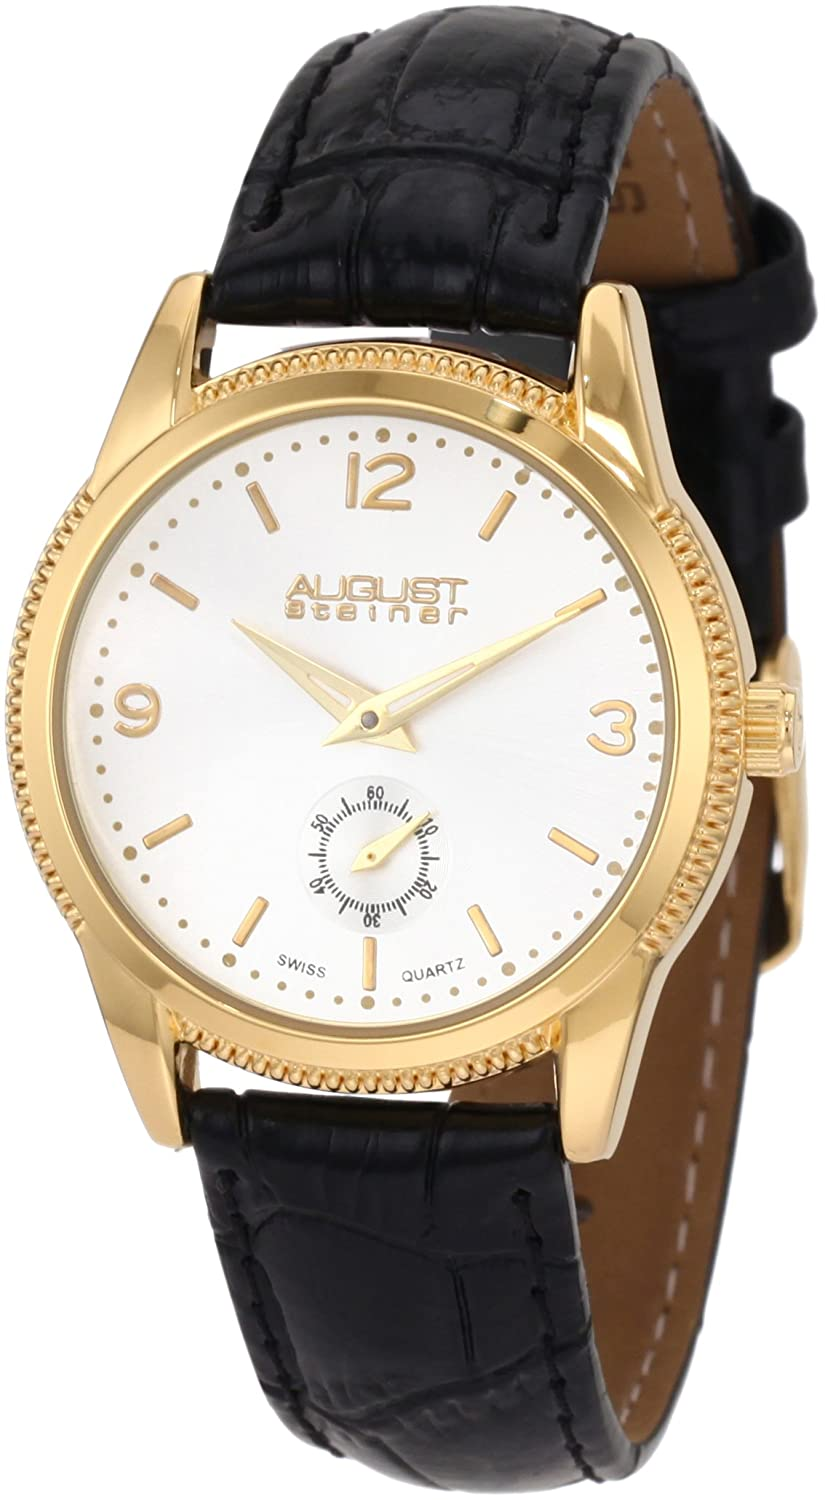 August Steener Femme ASA821YG Swiss Quartz Classique Dress Montre Bracelet B0054K46II